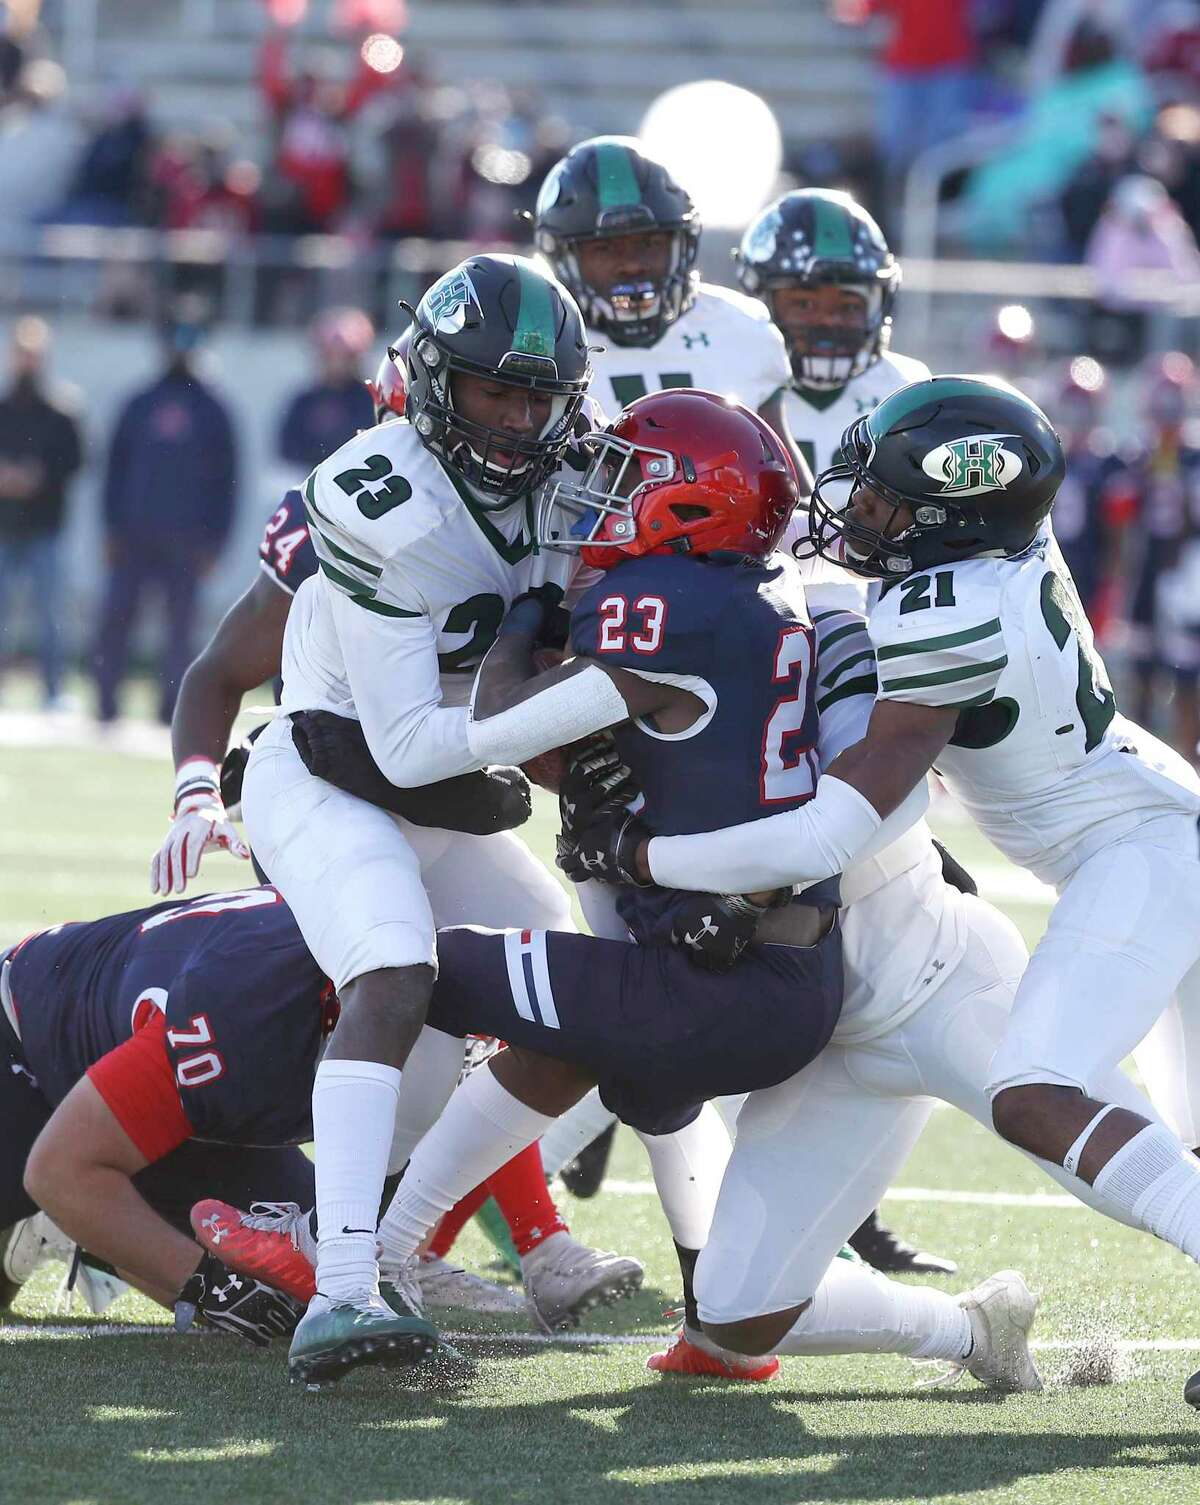 Manvel Mavericks Ty Harris (23) is tackled by Fort Bend Hightower Hurricanes Julian Payne (23) and Matthew Aneke (21) during the first half of a 5A D1 high school football game at Freedom Field, Thursday, December 24, 2020, in Arcola.